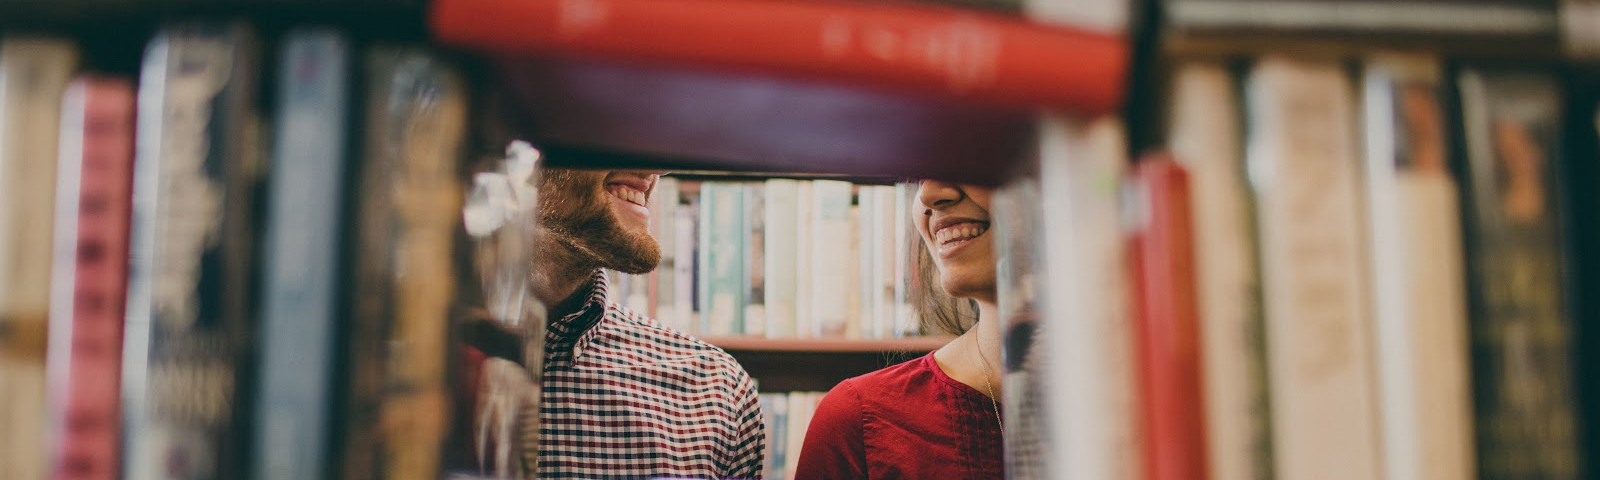 Image of couple smiling framed through a hidden hole in a bookshelf.